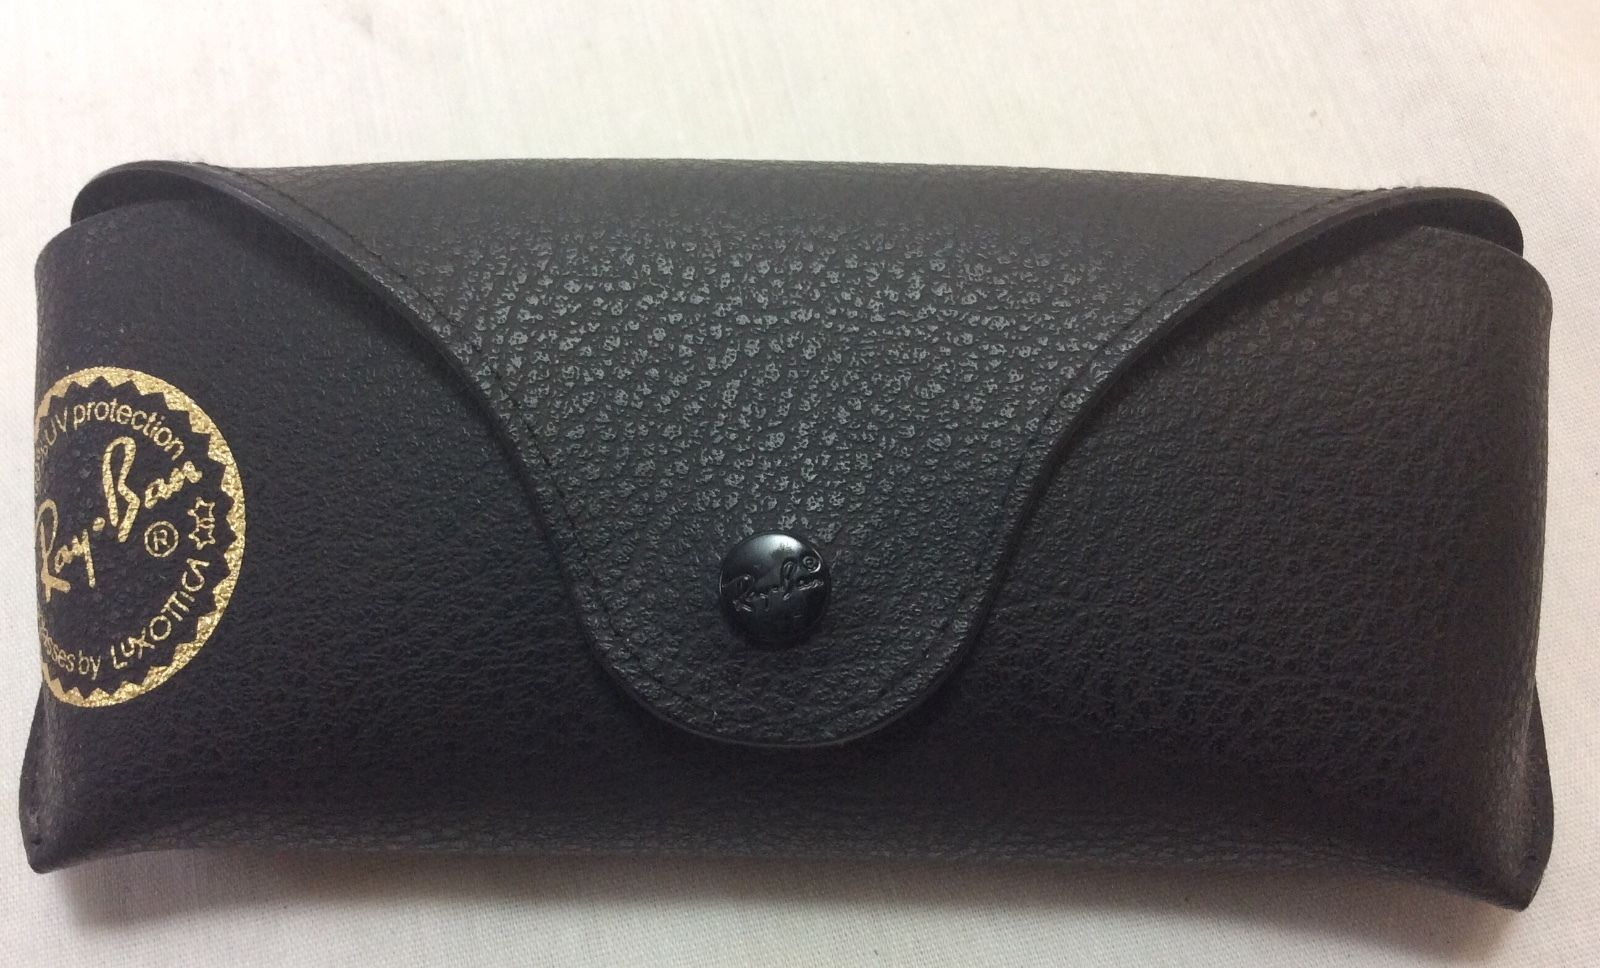 79d330cd4e Ray Ban Aviator Lens Case Black with Ray Ban and 50 similar items